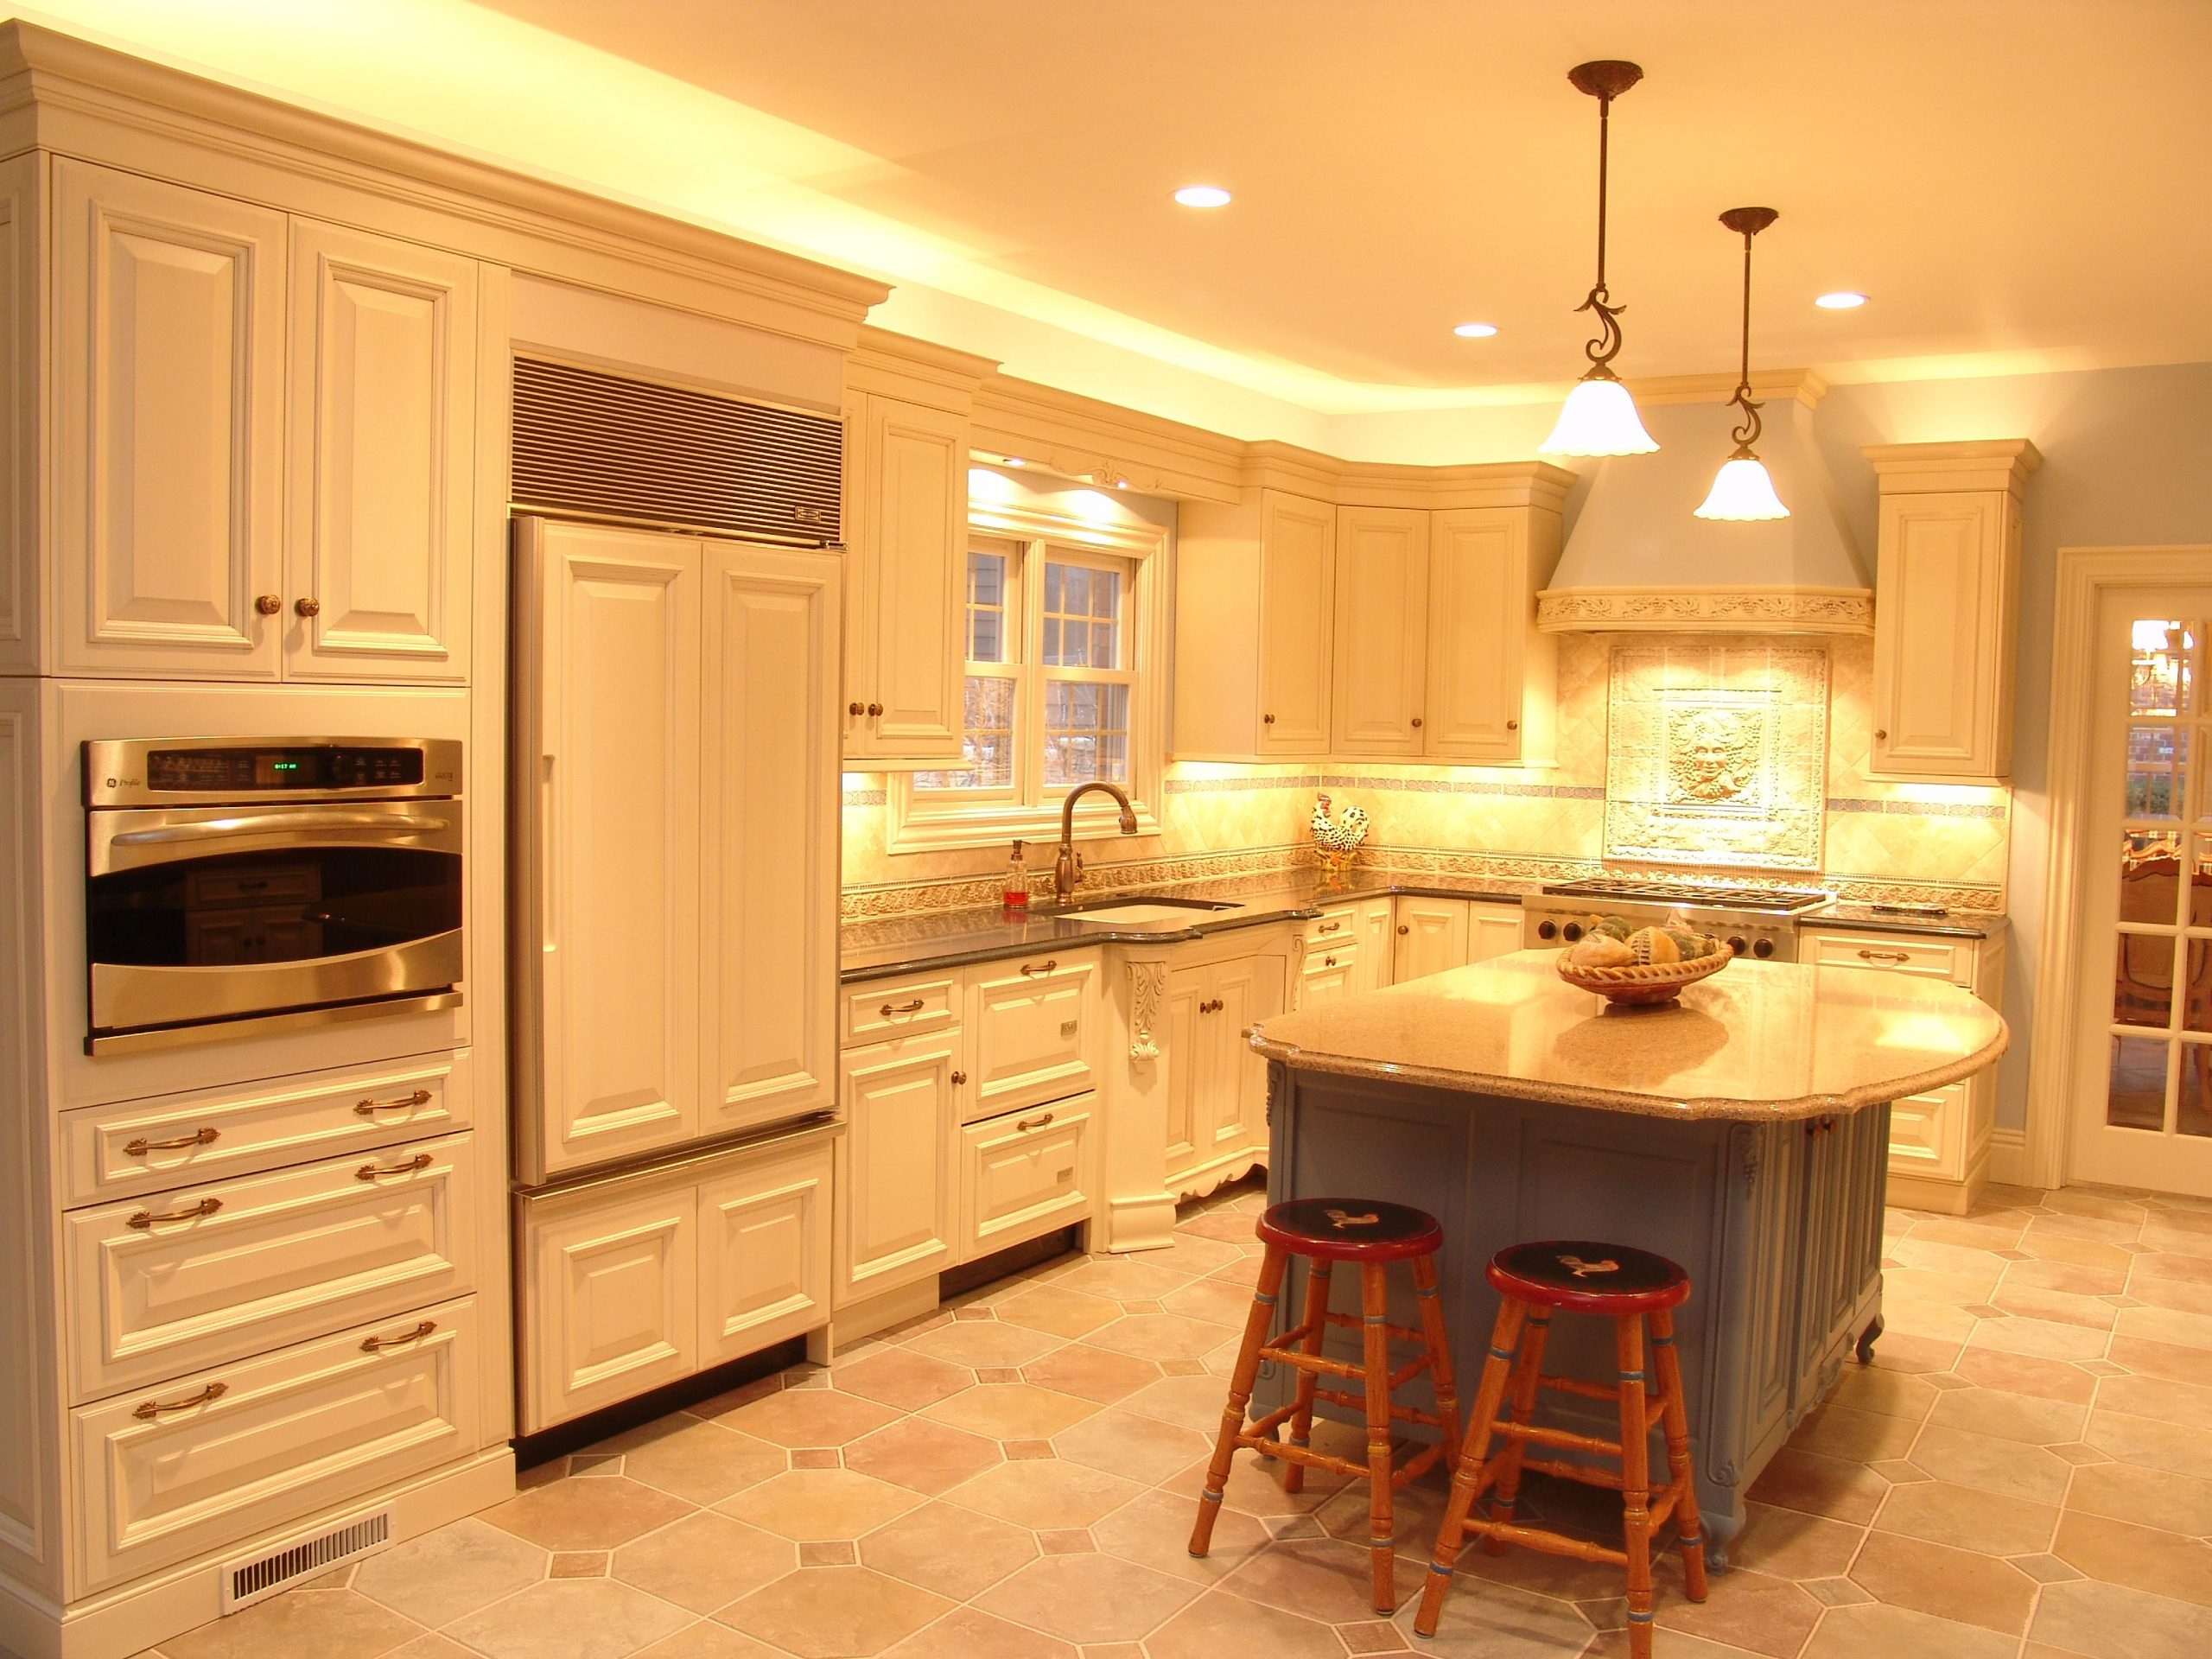 Kitchen Remodeling Companies Footer Section Image